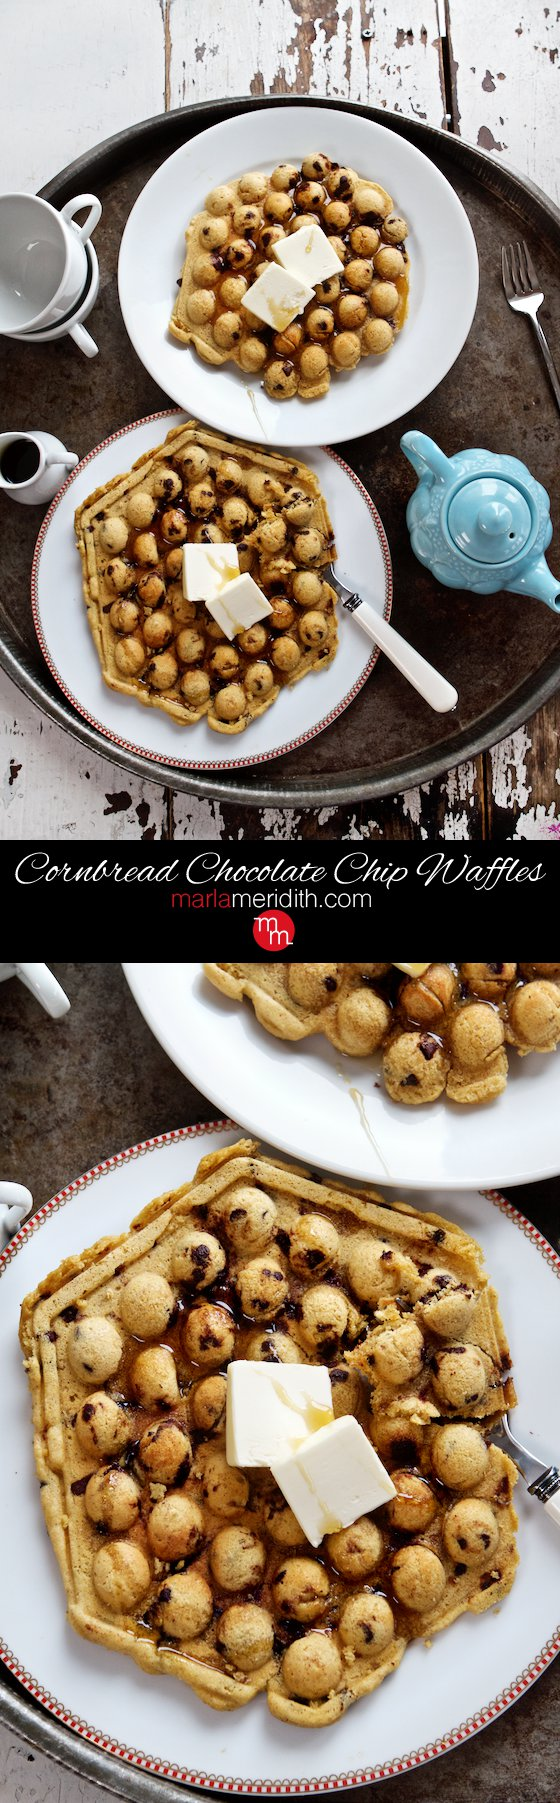 Chocolate Chip Cornbread Waffles your family will LOVE this recipe, especially chocolate lovers! MarlaMeridith.com ( @marlameridith ) #recipe #breakfast